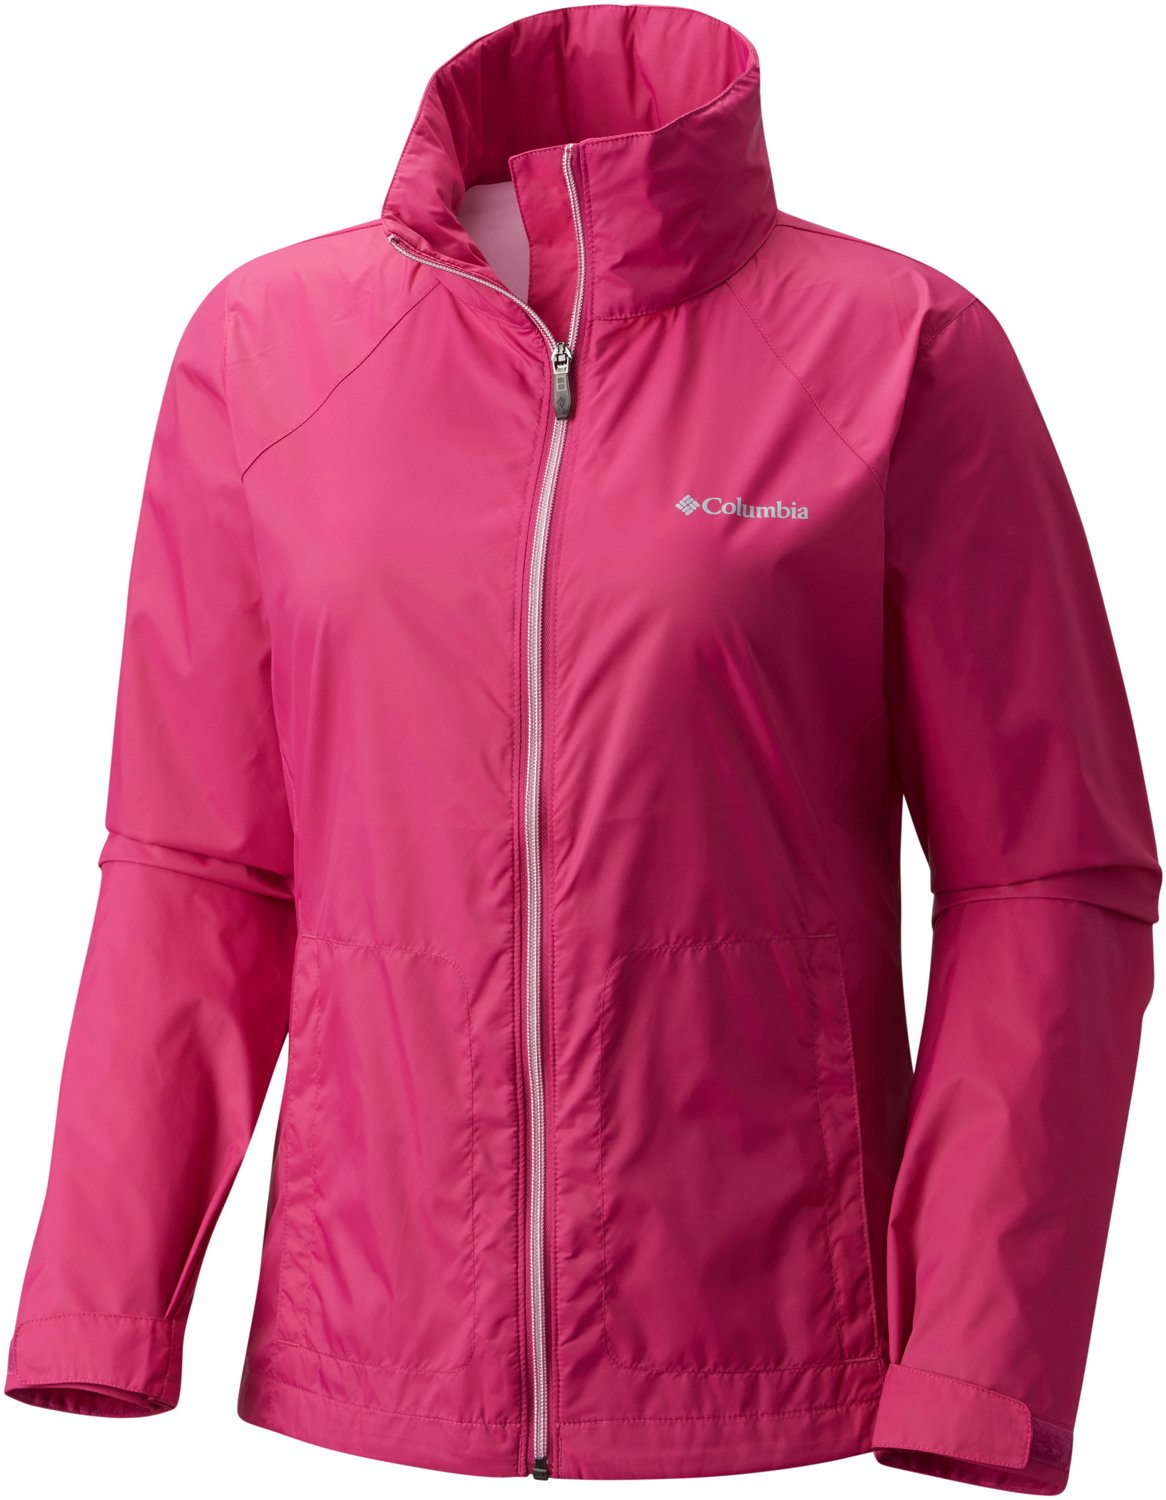 43b23ef3d3a02 Display product reviews for Columbia Sportswear Women's Switchback III Rain  Jacket